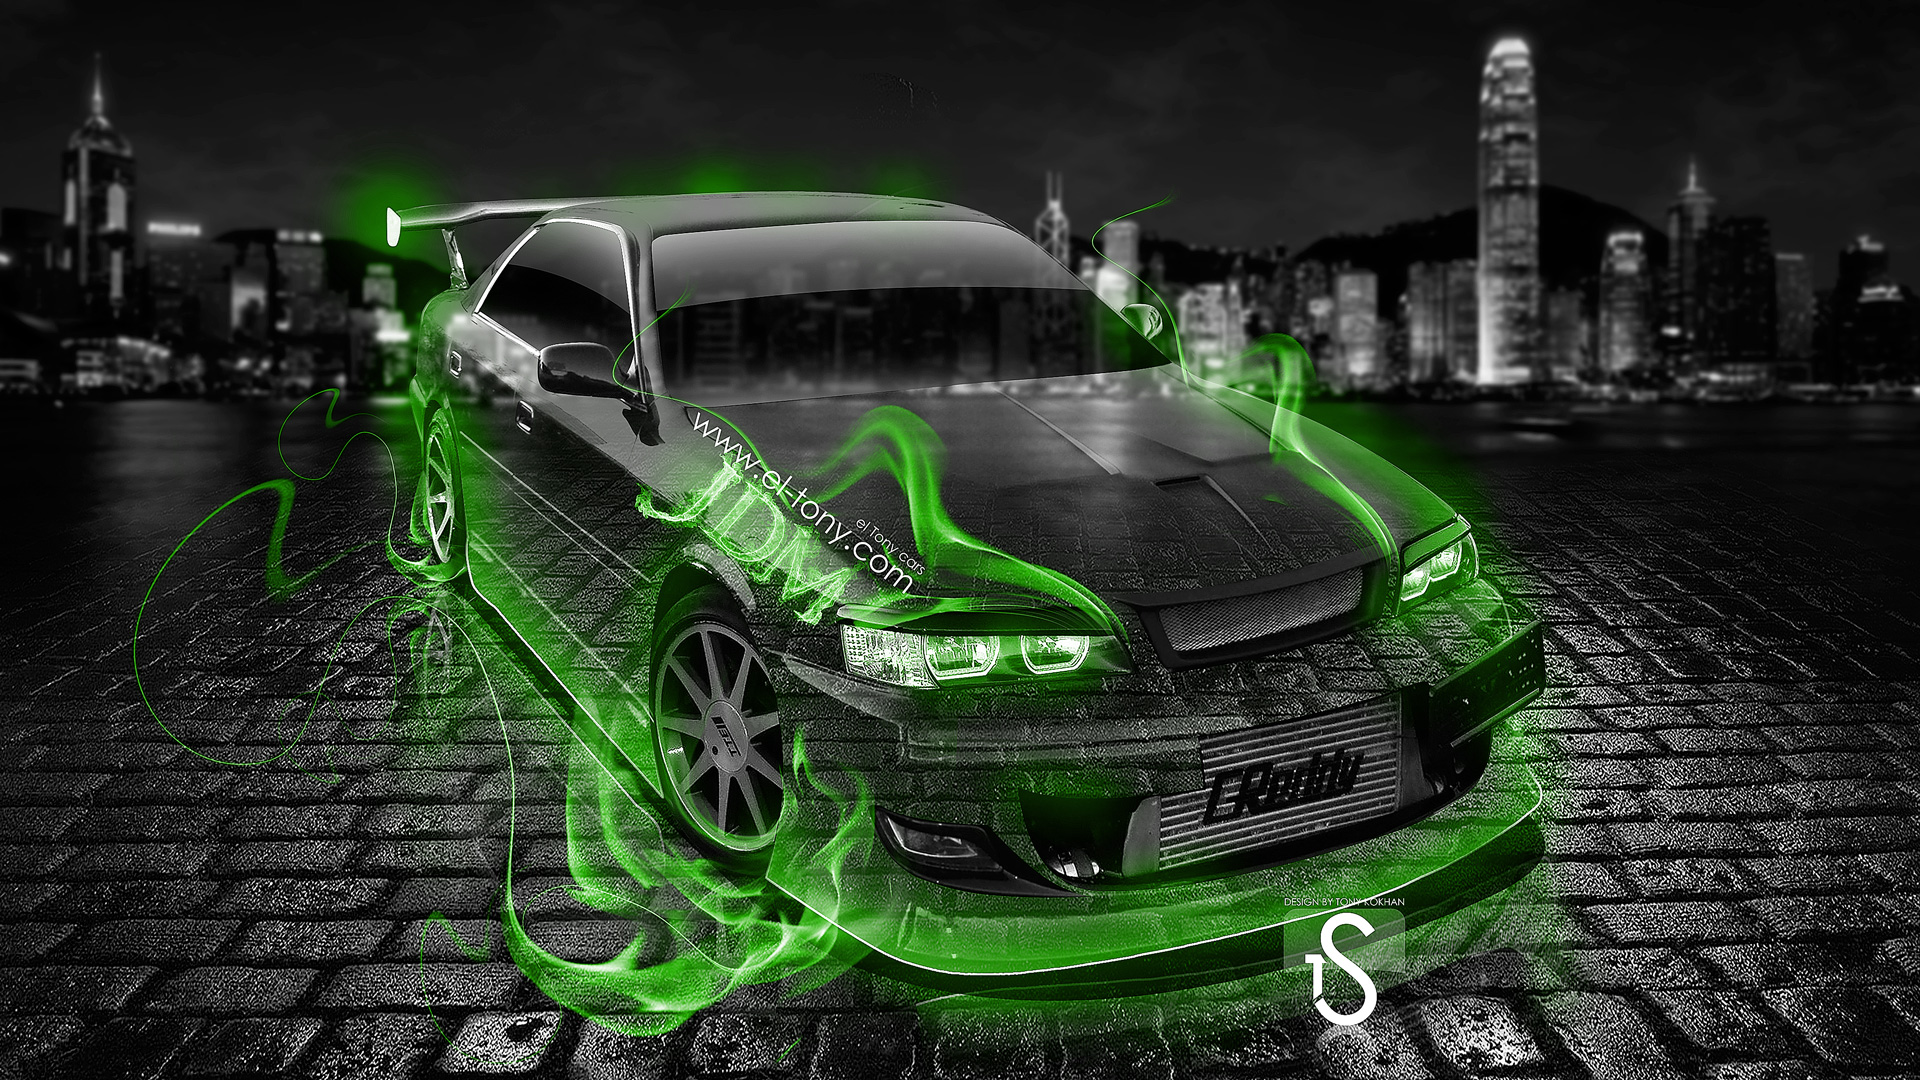 Superbe Toyota Chaser Tuning JZX100 JDM Green Fire Crystal .